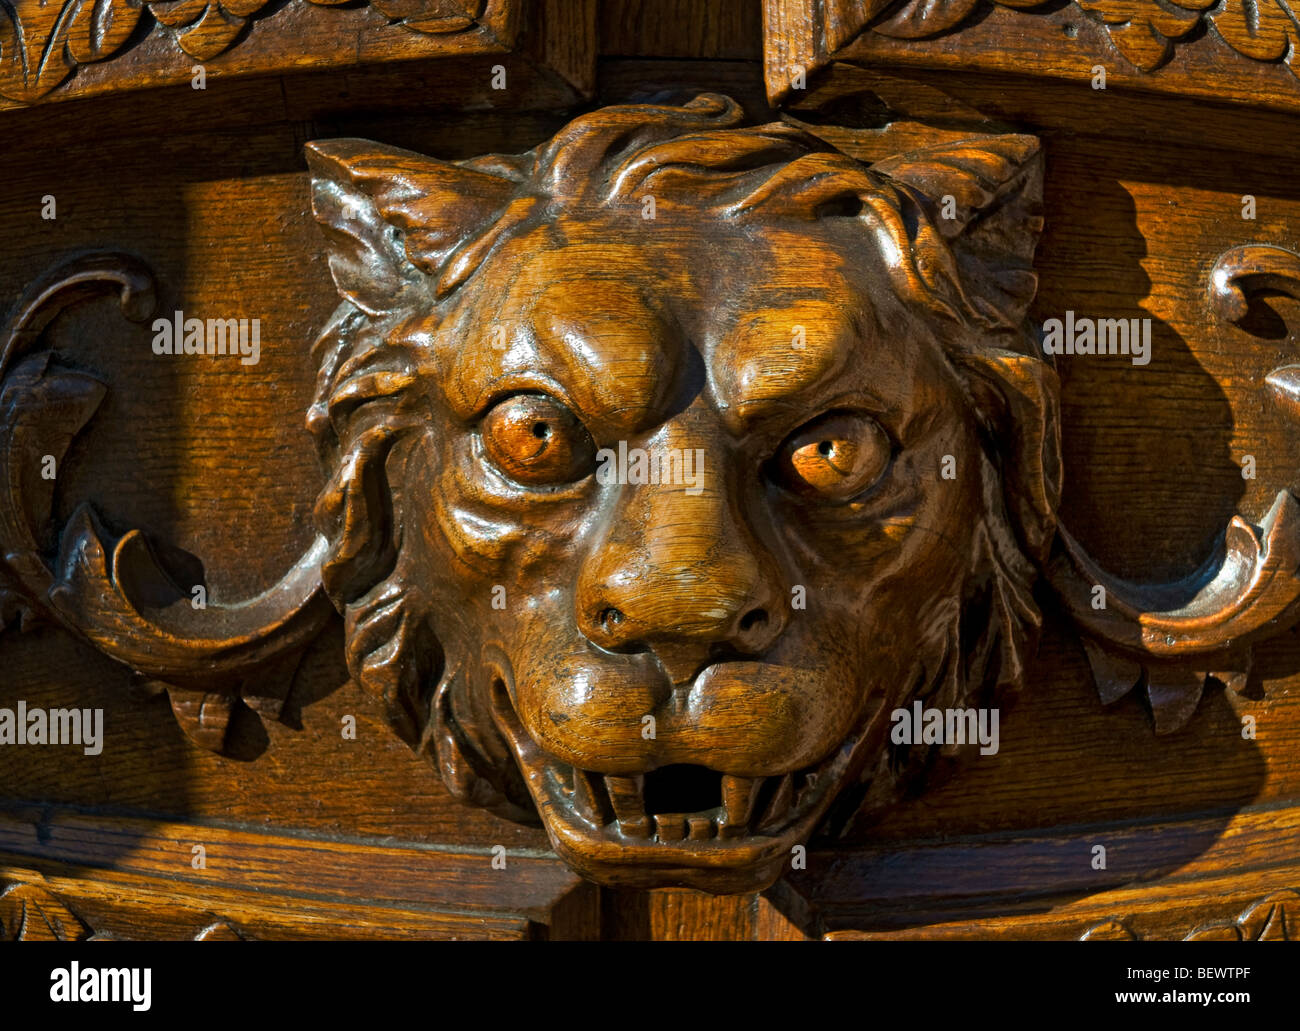 Ornate carving of mythical fierce lion as guardian on grand substantial wooden front entrance door - Stock Image